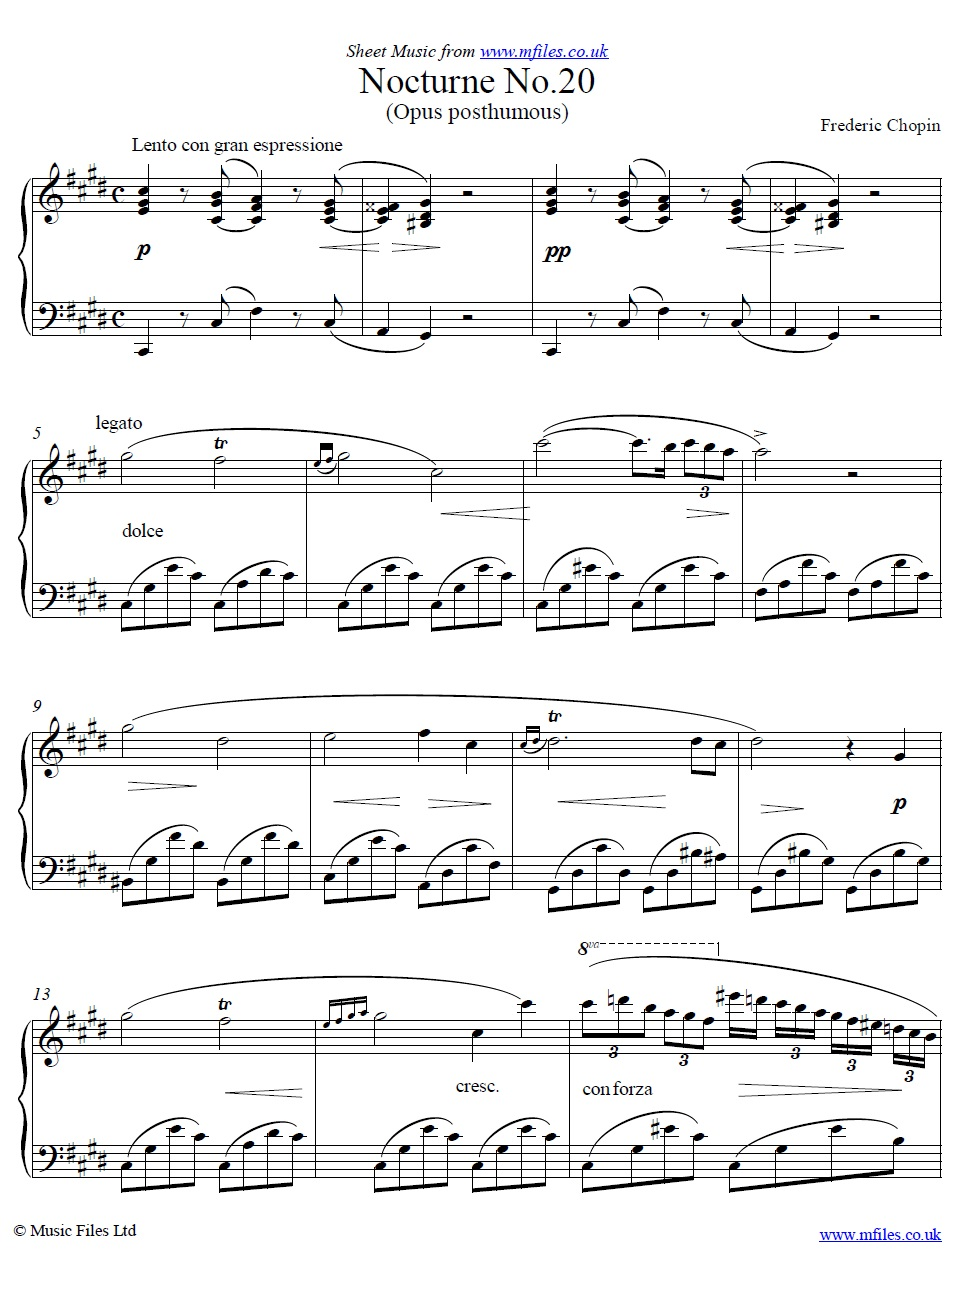 Frederic Chopin : Nocturne No 20 in C# minor (Opus